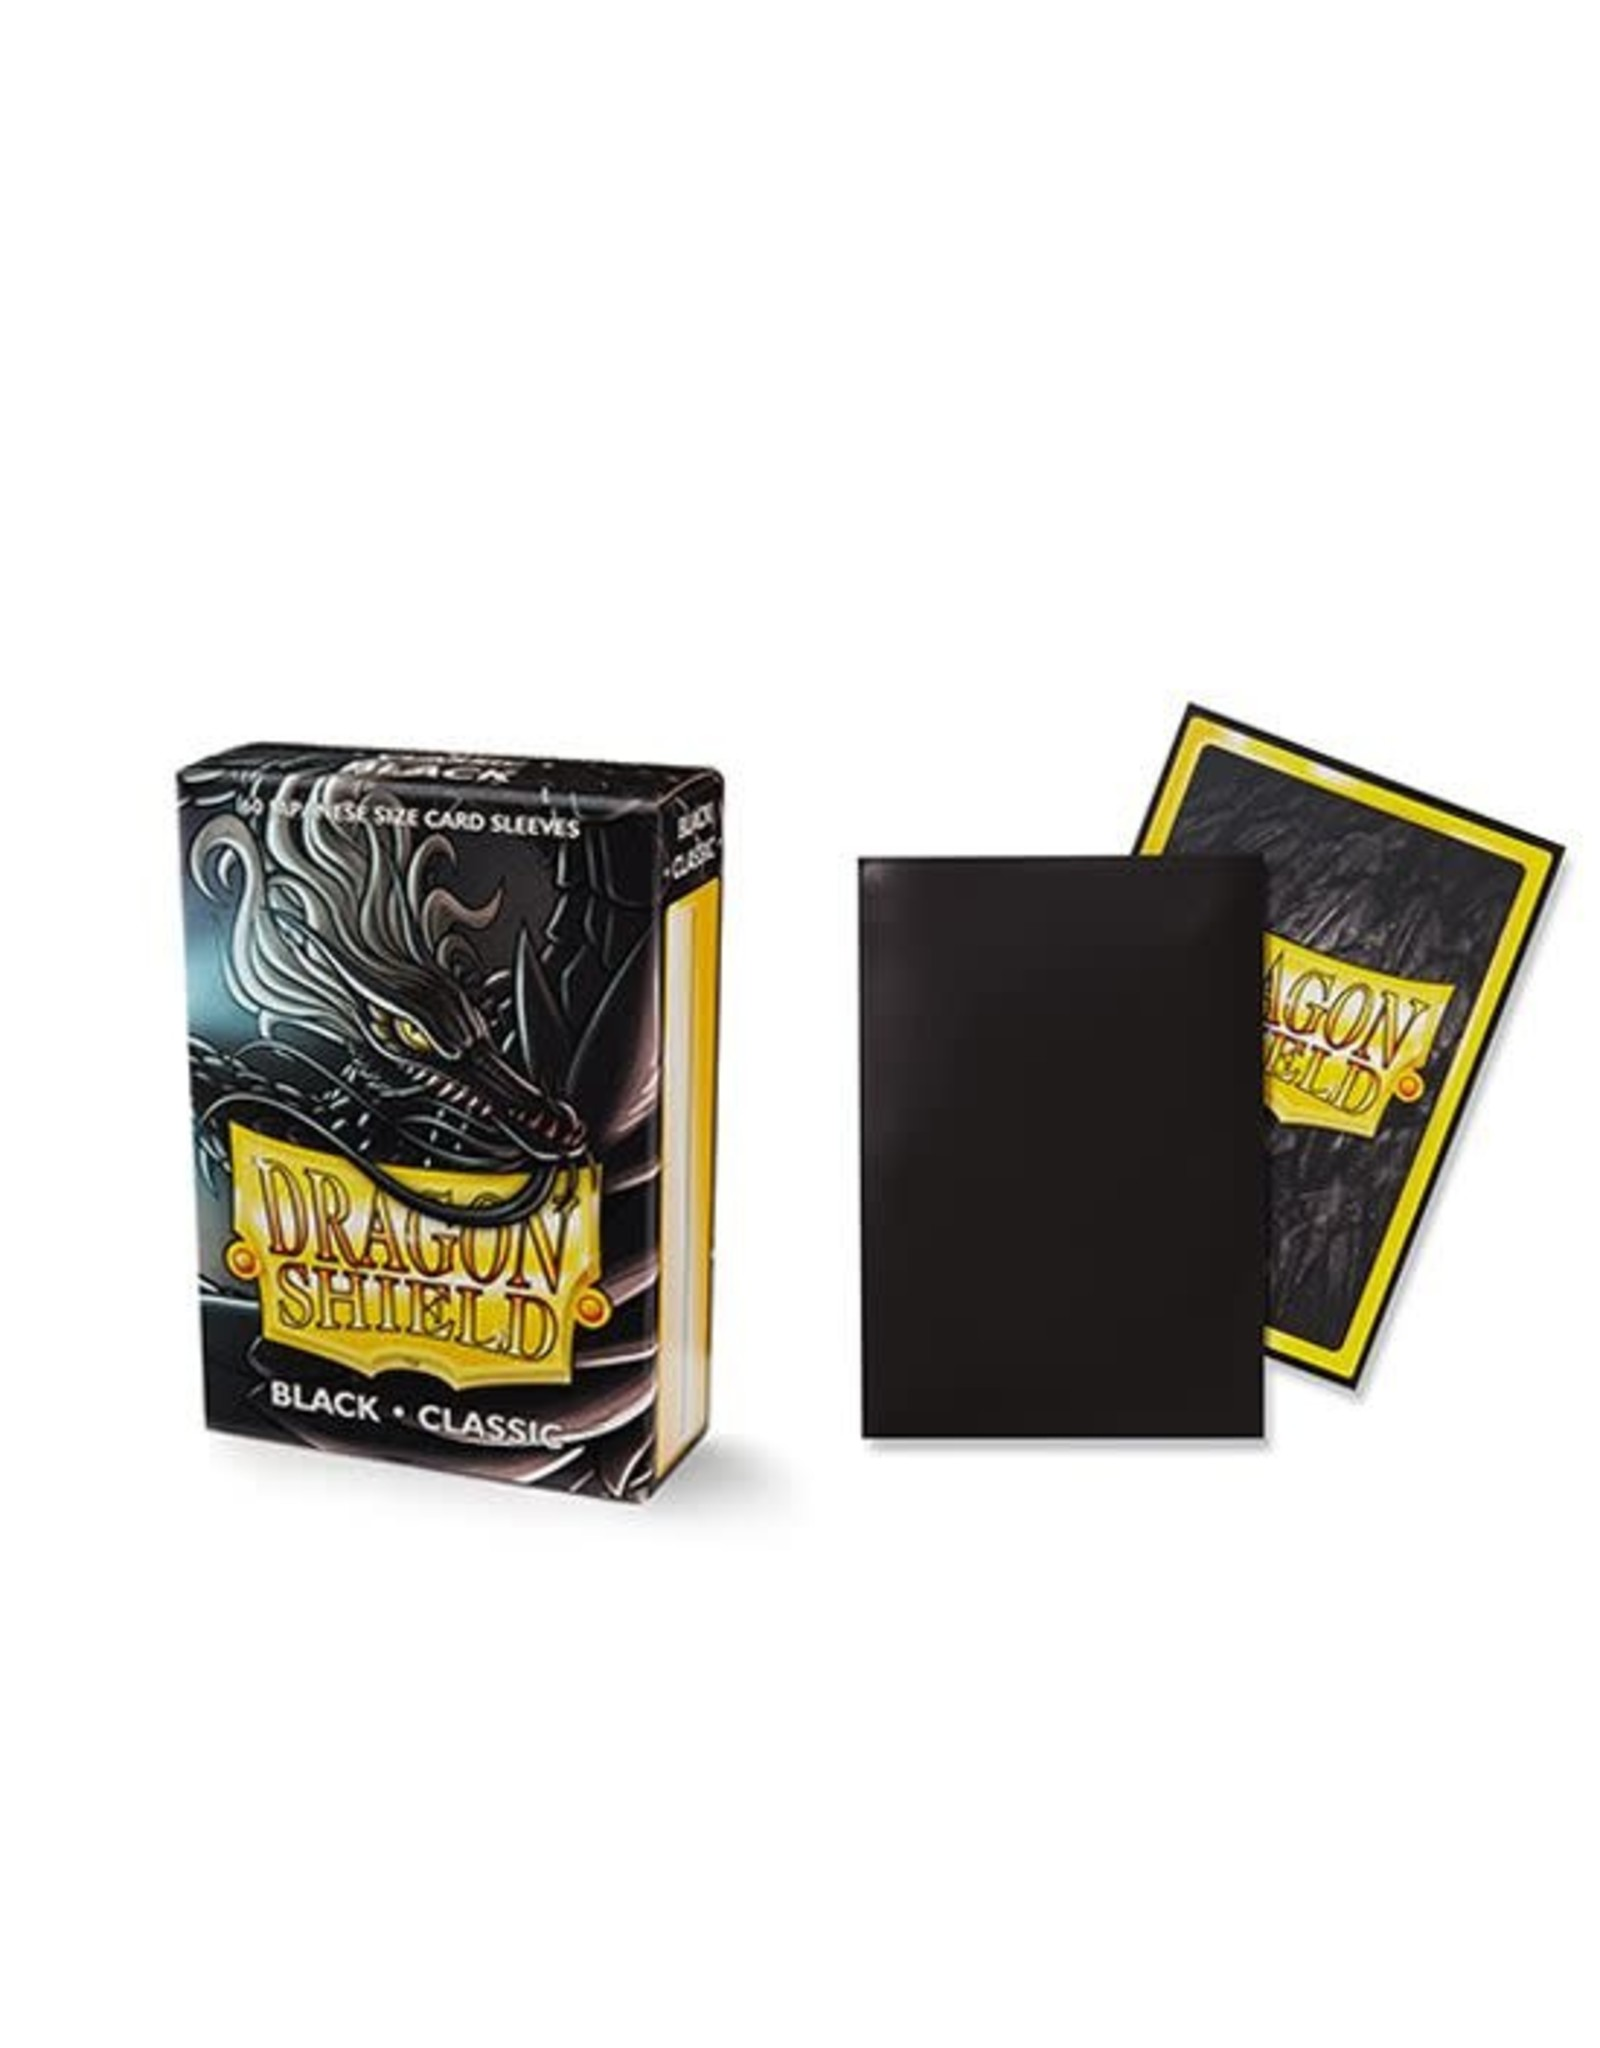 Arcane Tinmen DRAGON SHIELD SLEEVES JAPANESE BLACK 60CT